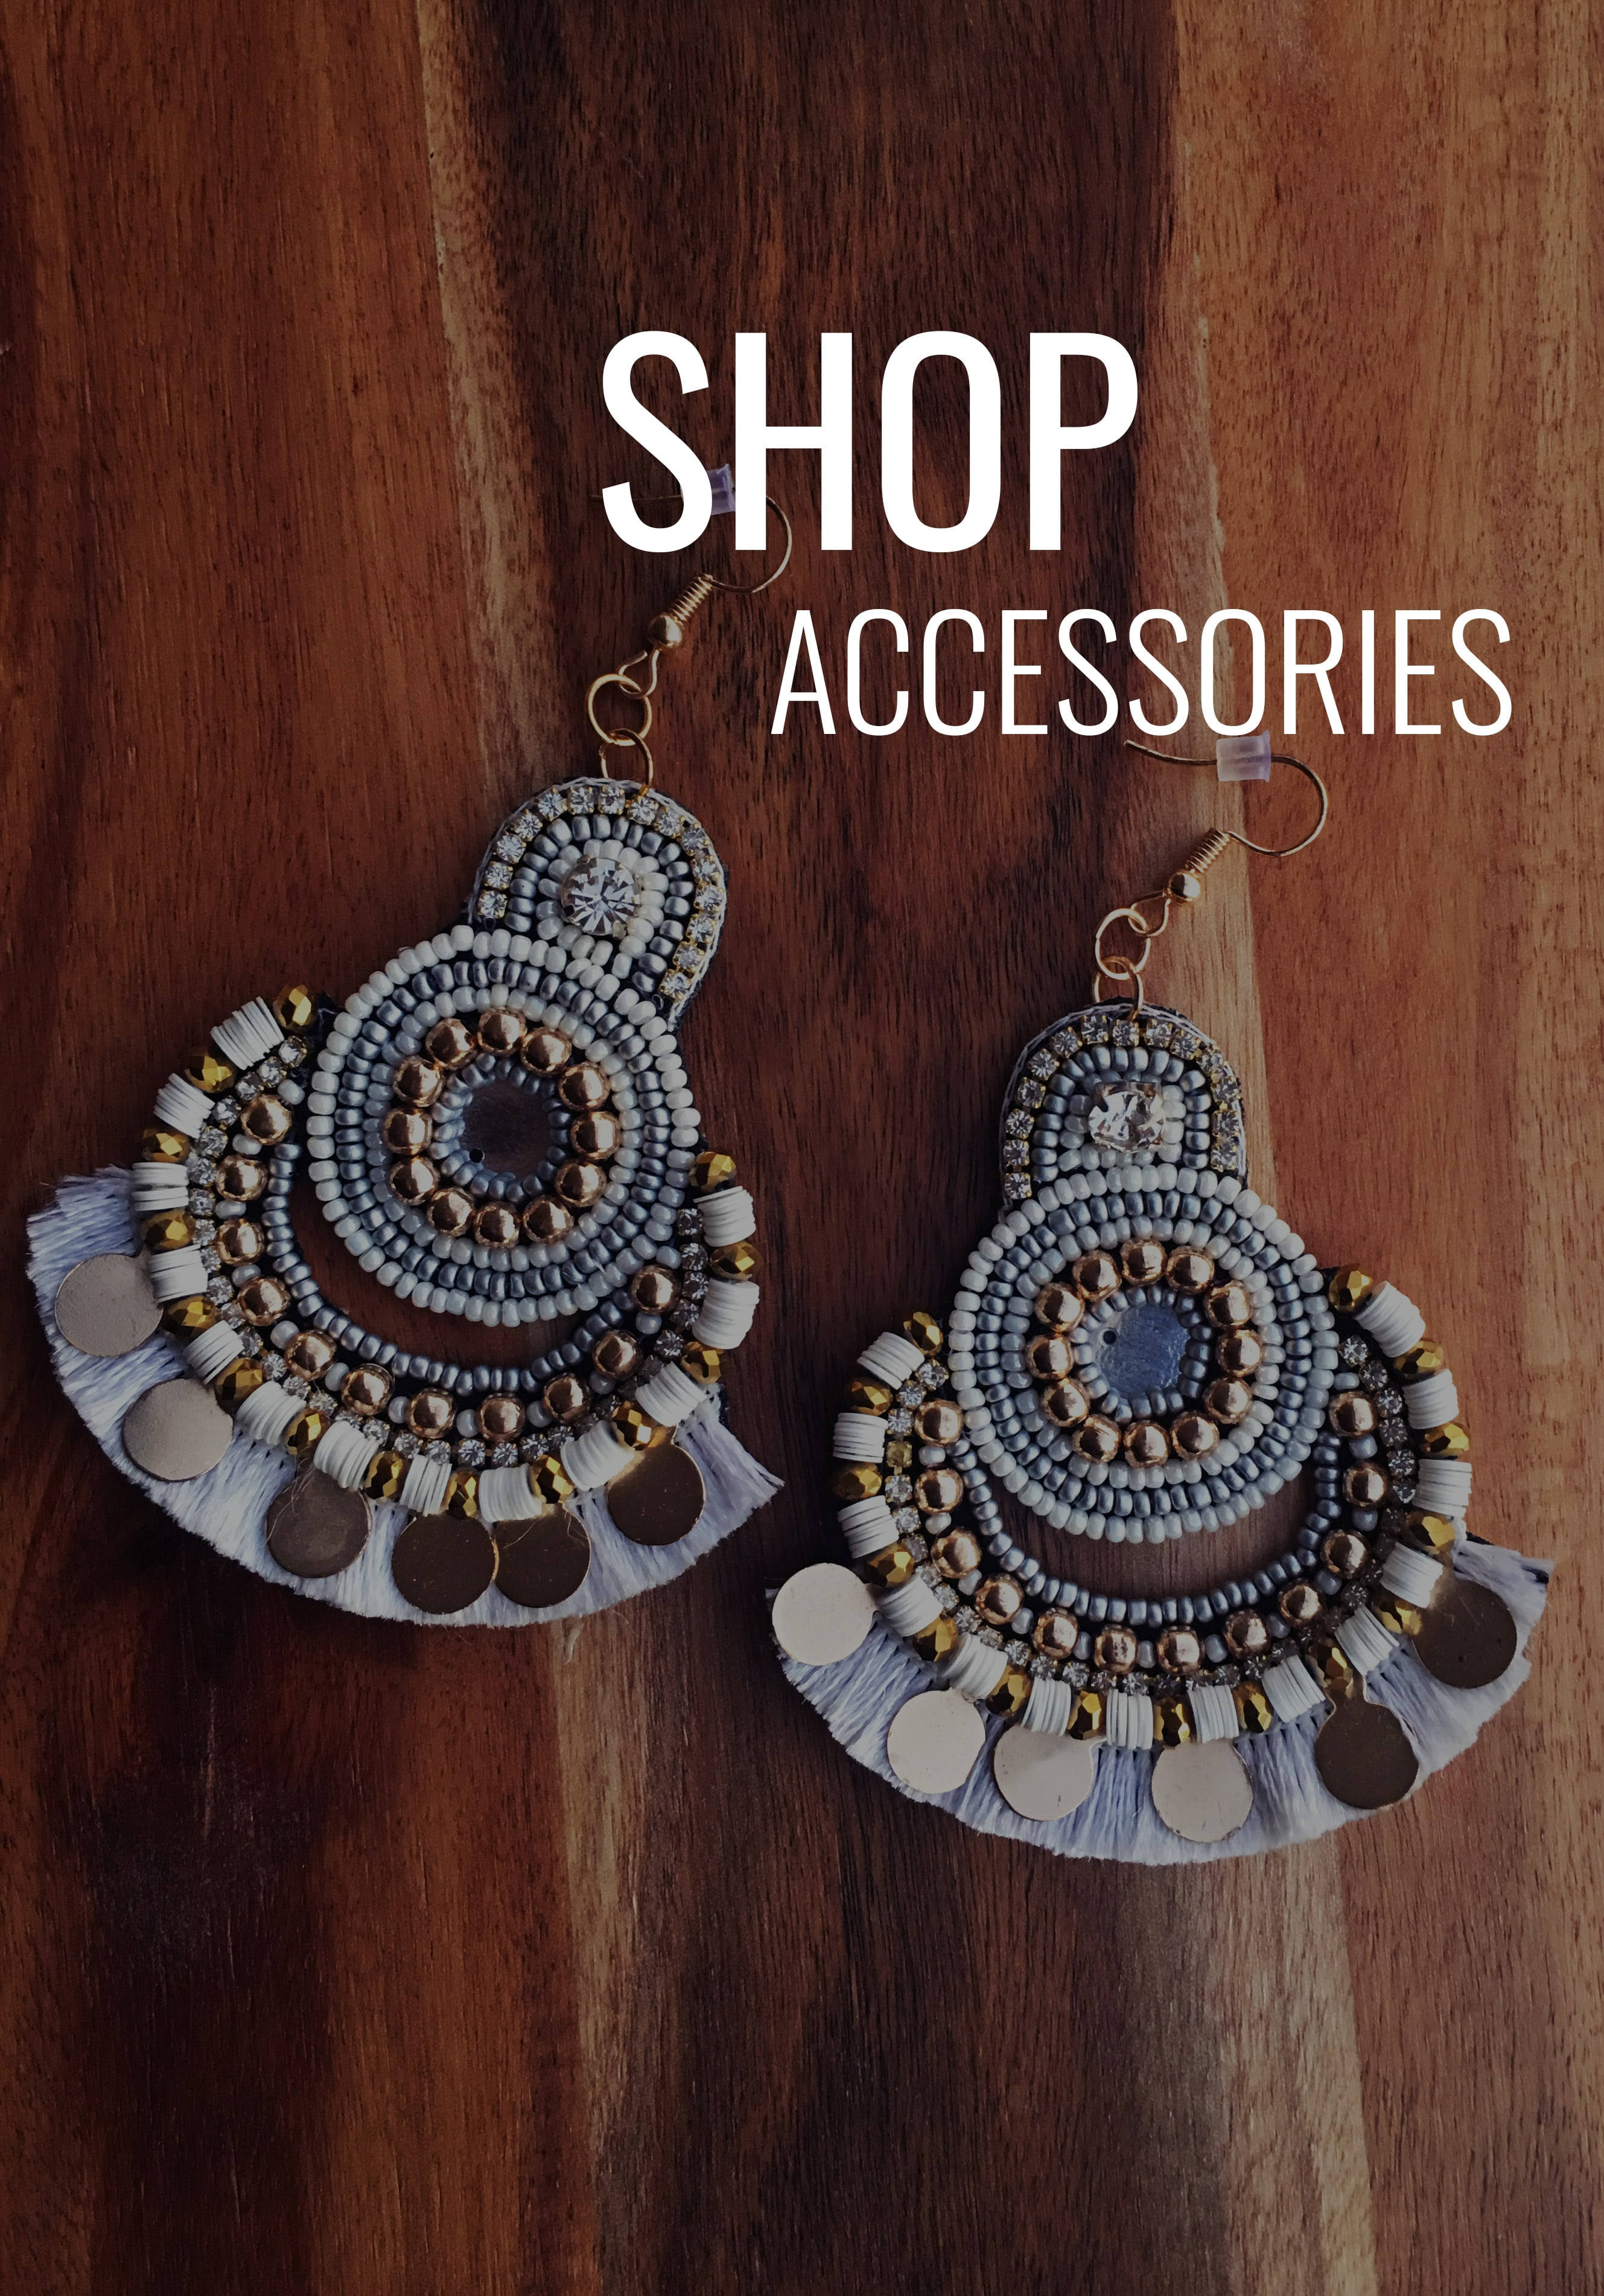 Shope Accessories